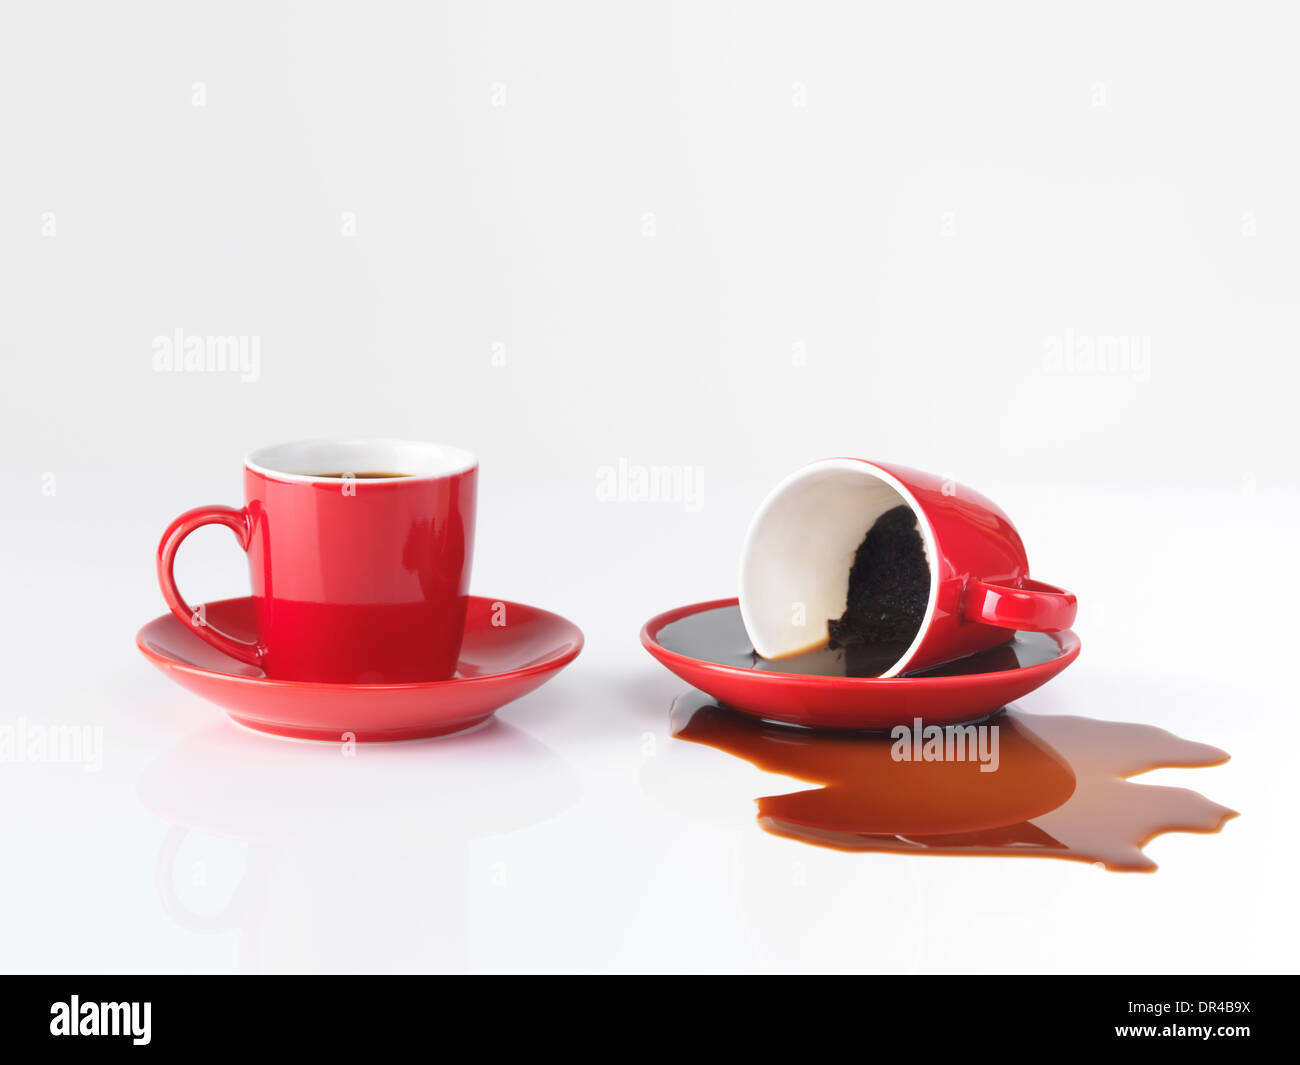 two red espresso coffee cups one cup with spilled coffee isolated